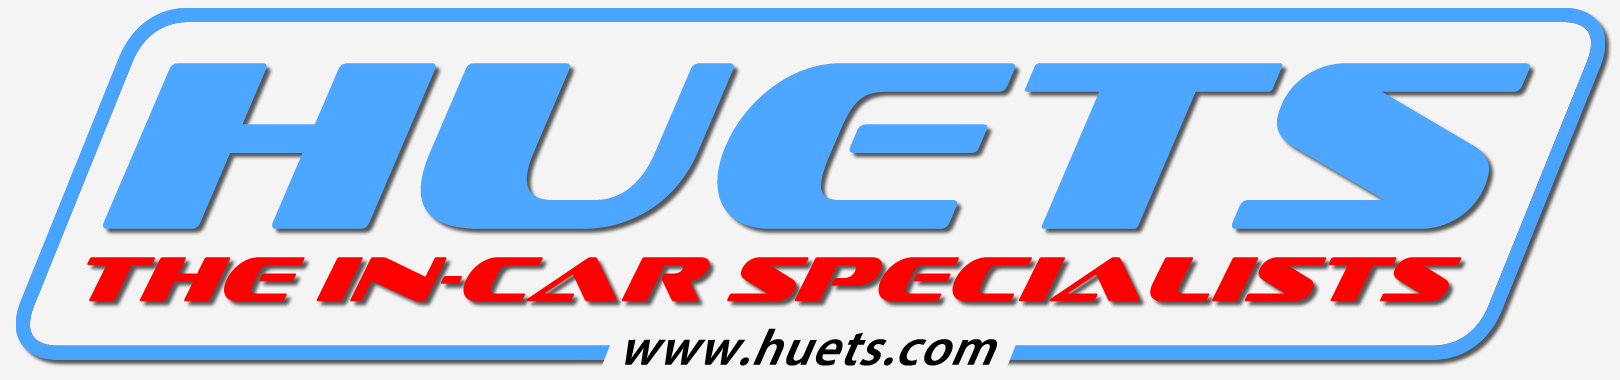 Huets - The In-Car Specialists